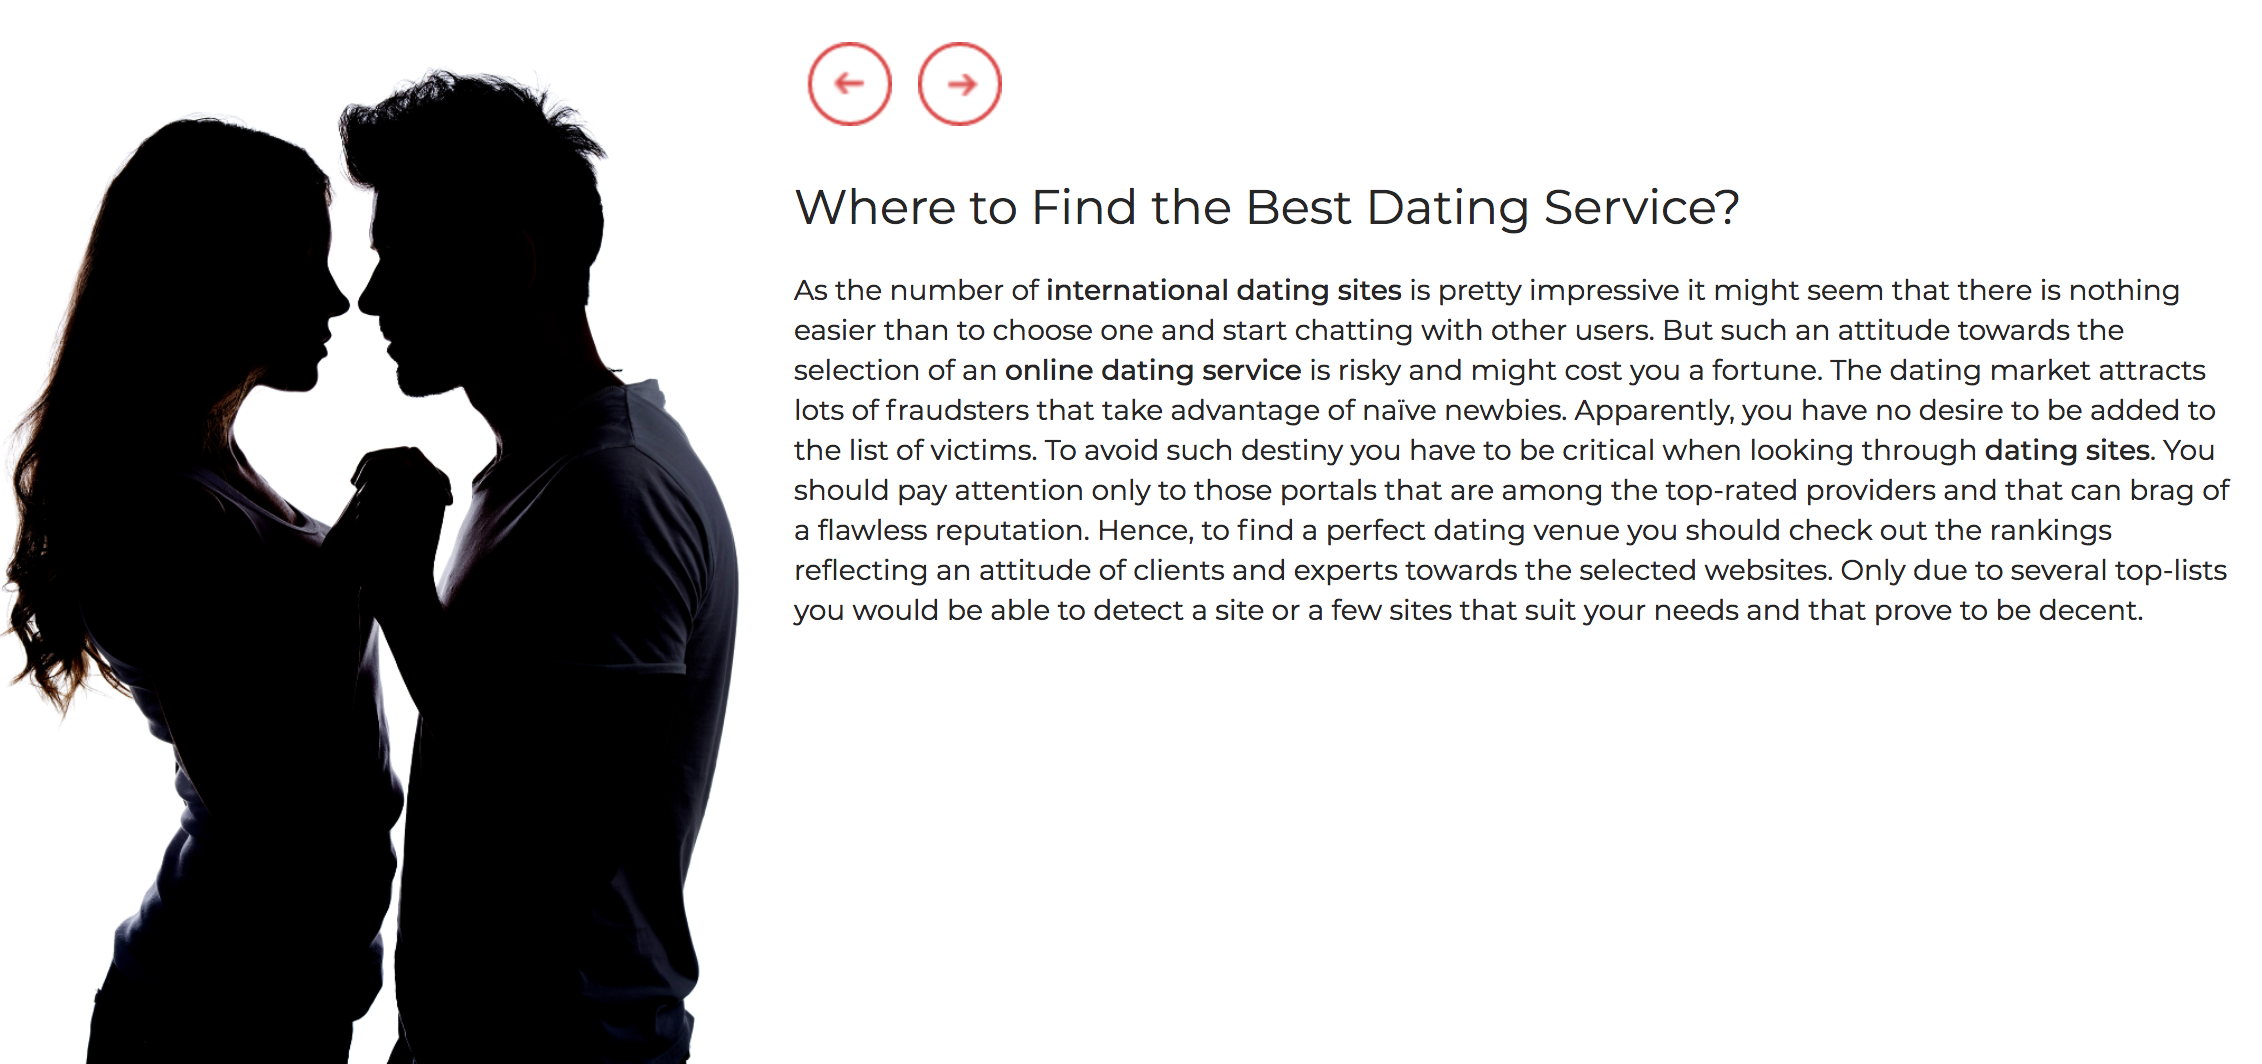 Online dating matchmaking services